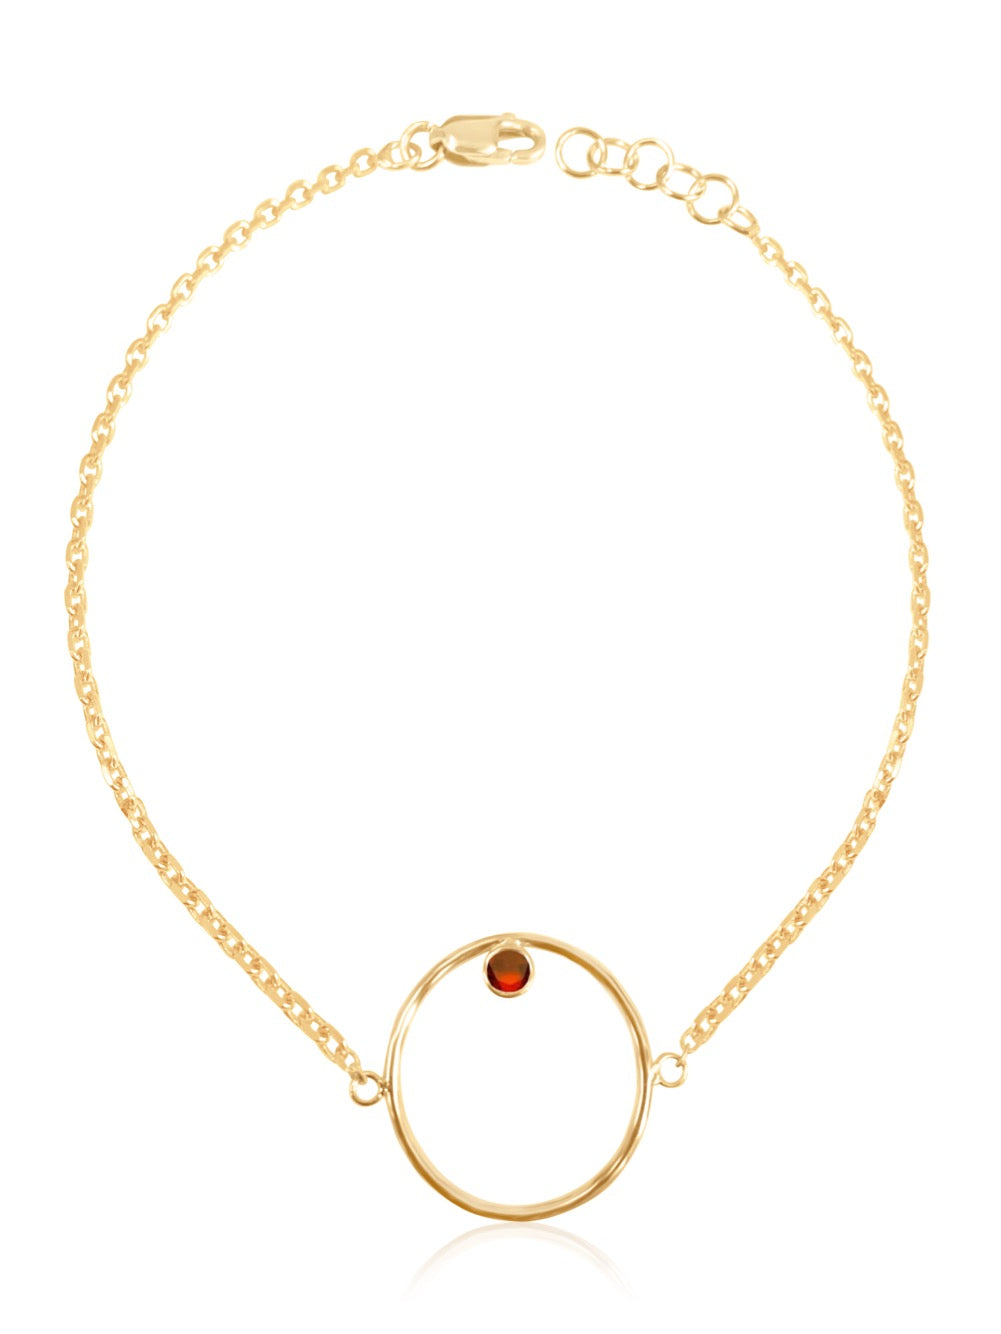 14K Gold Diamond/Gemstone Circle Bracelet